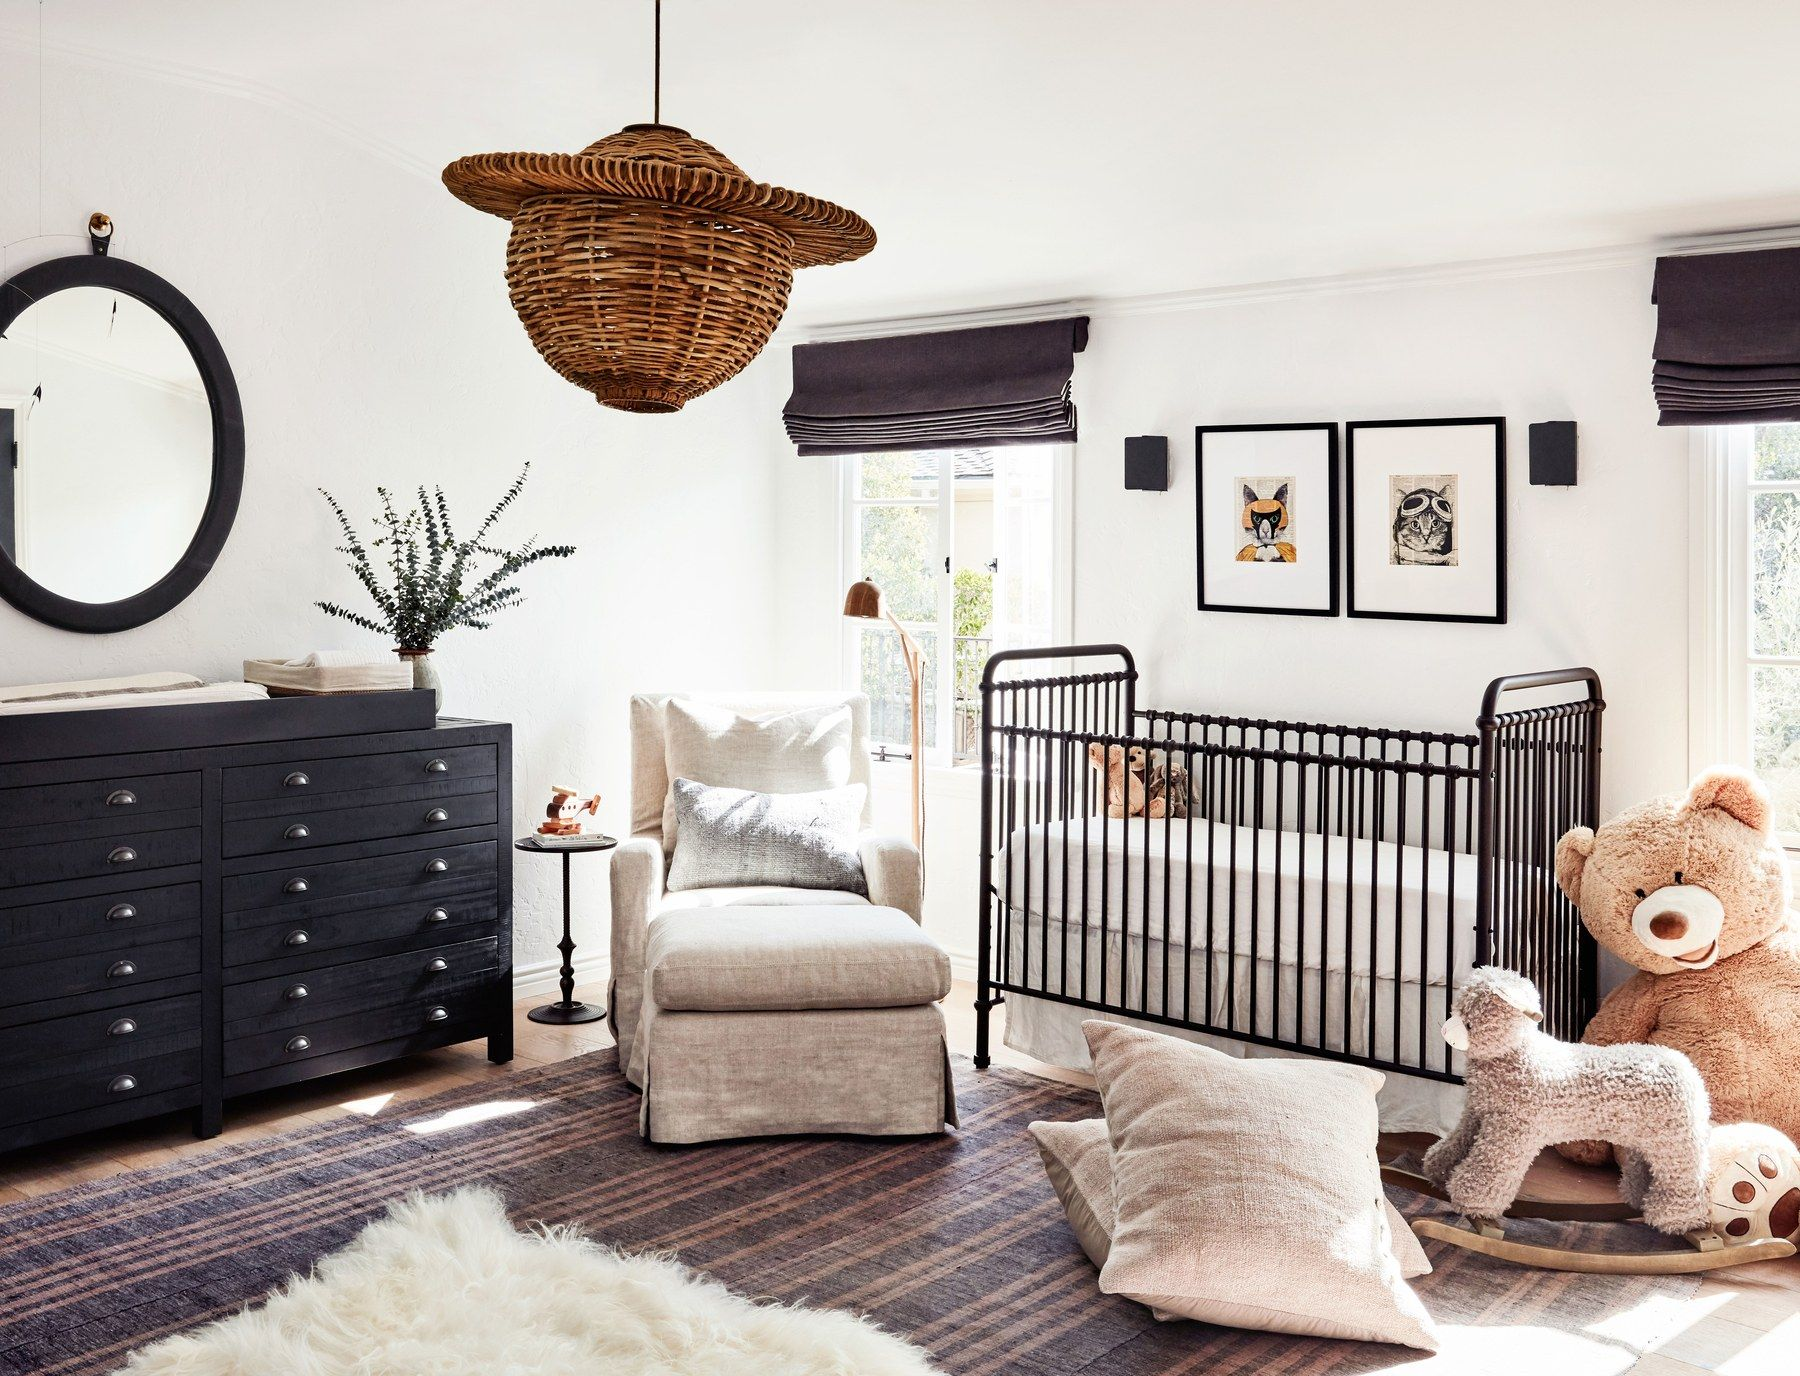 The Nursery Balances Minimalist Finishes And Warm Texture With Help